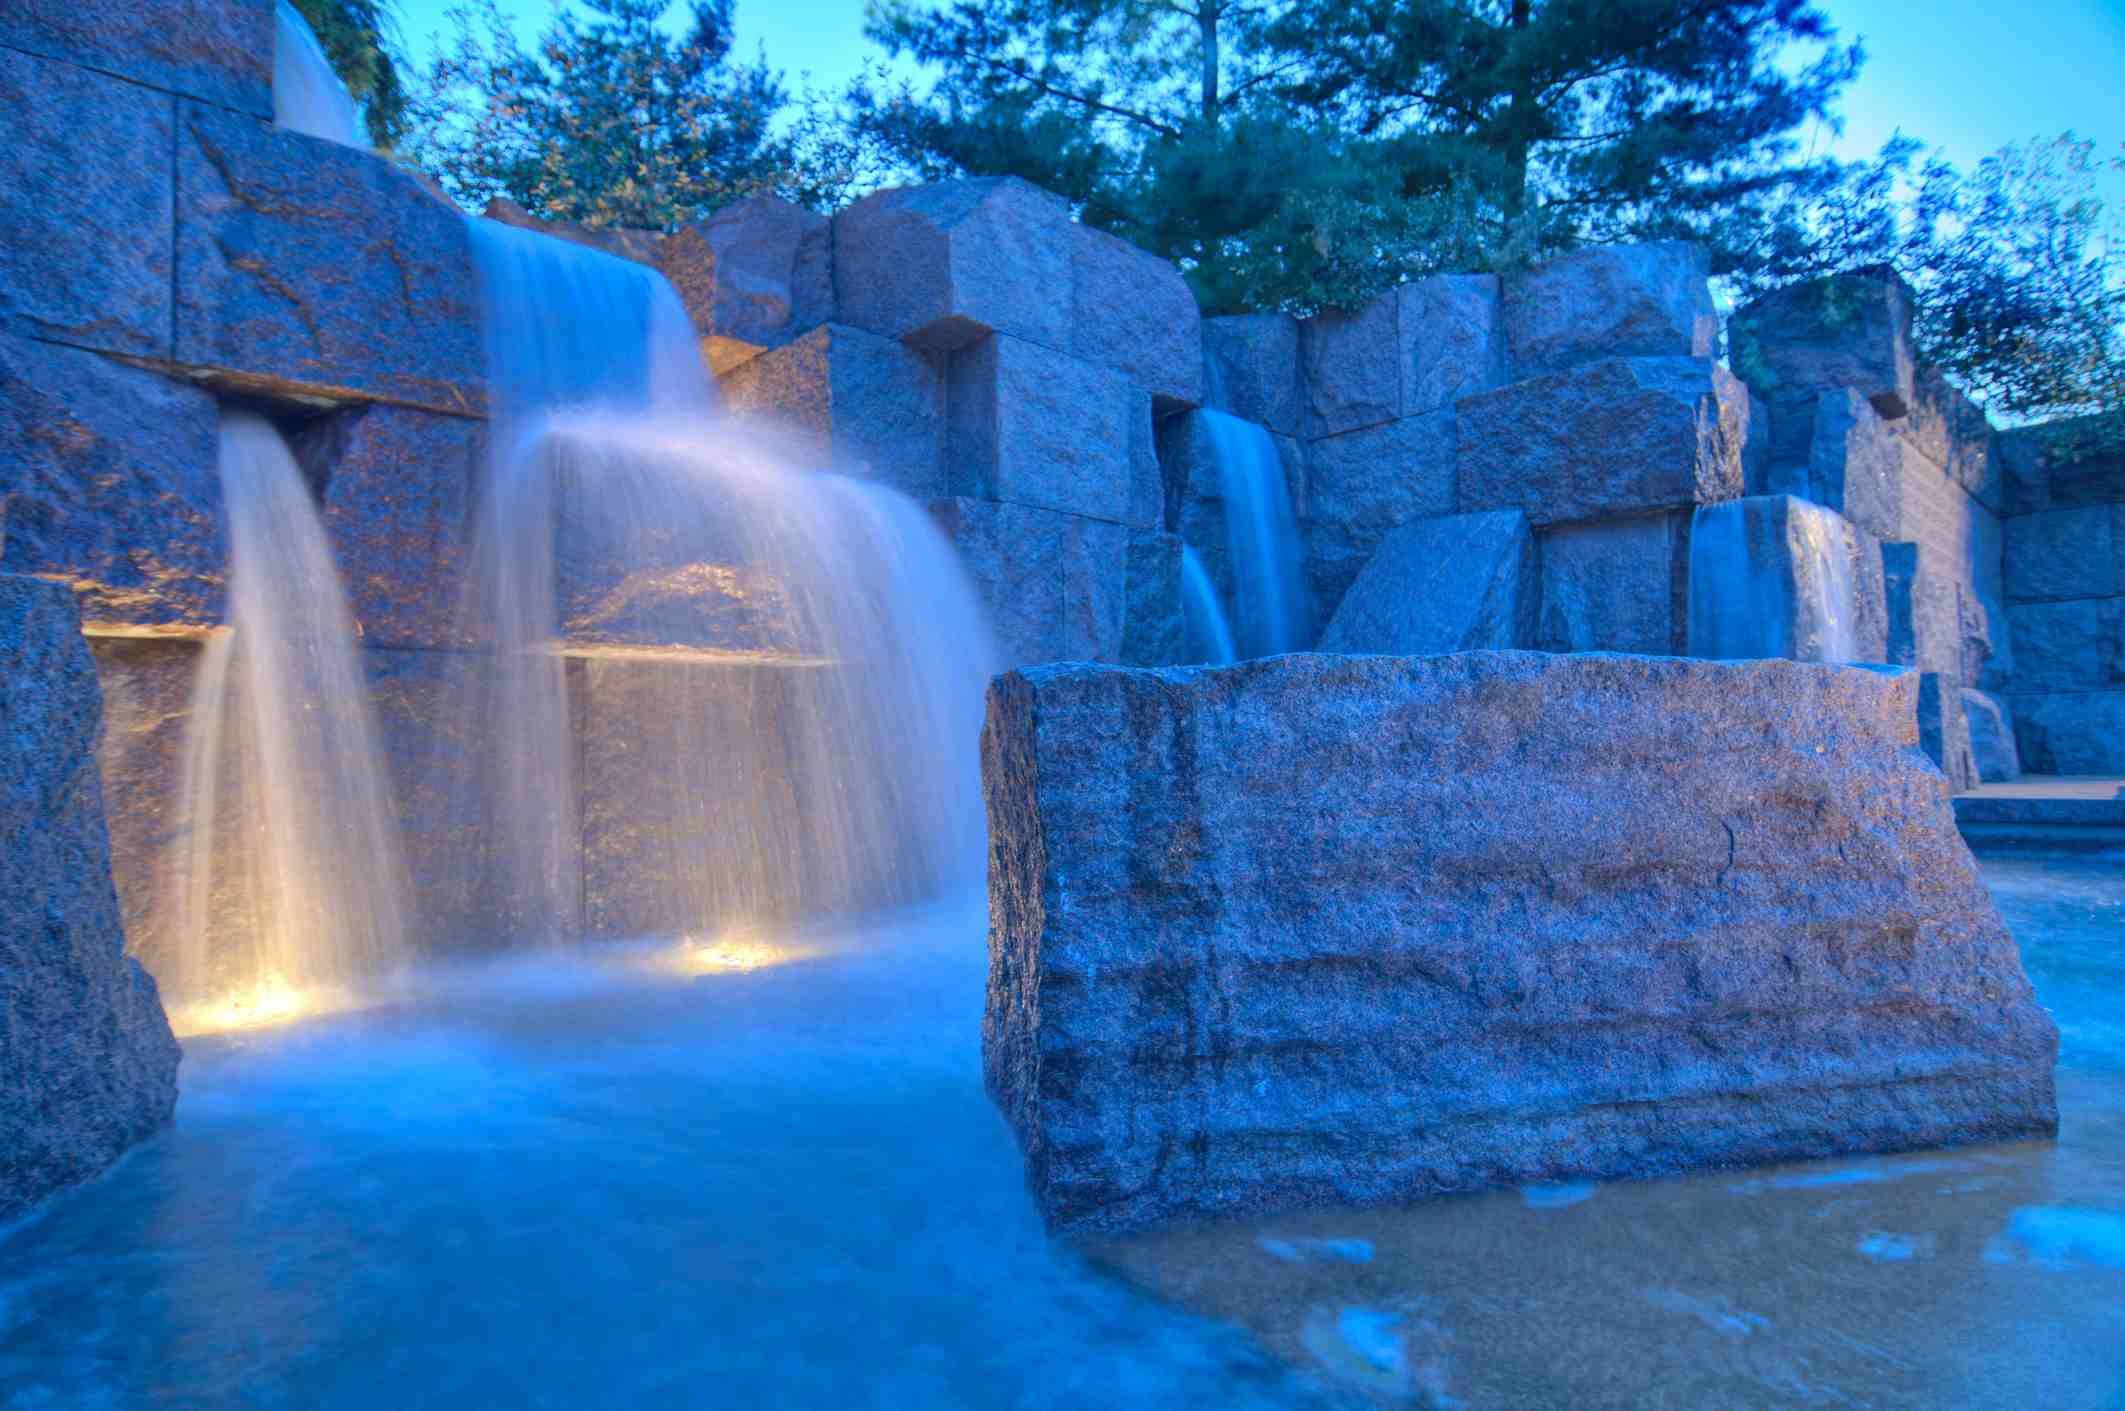 The waterfall at The FDR Memorial located at the Tidal Basin in Washington, DC.